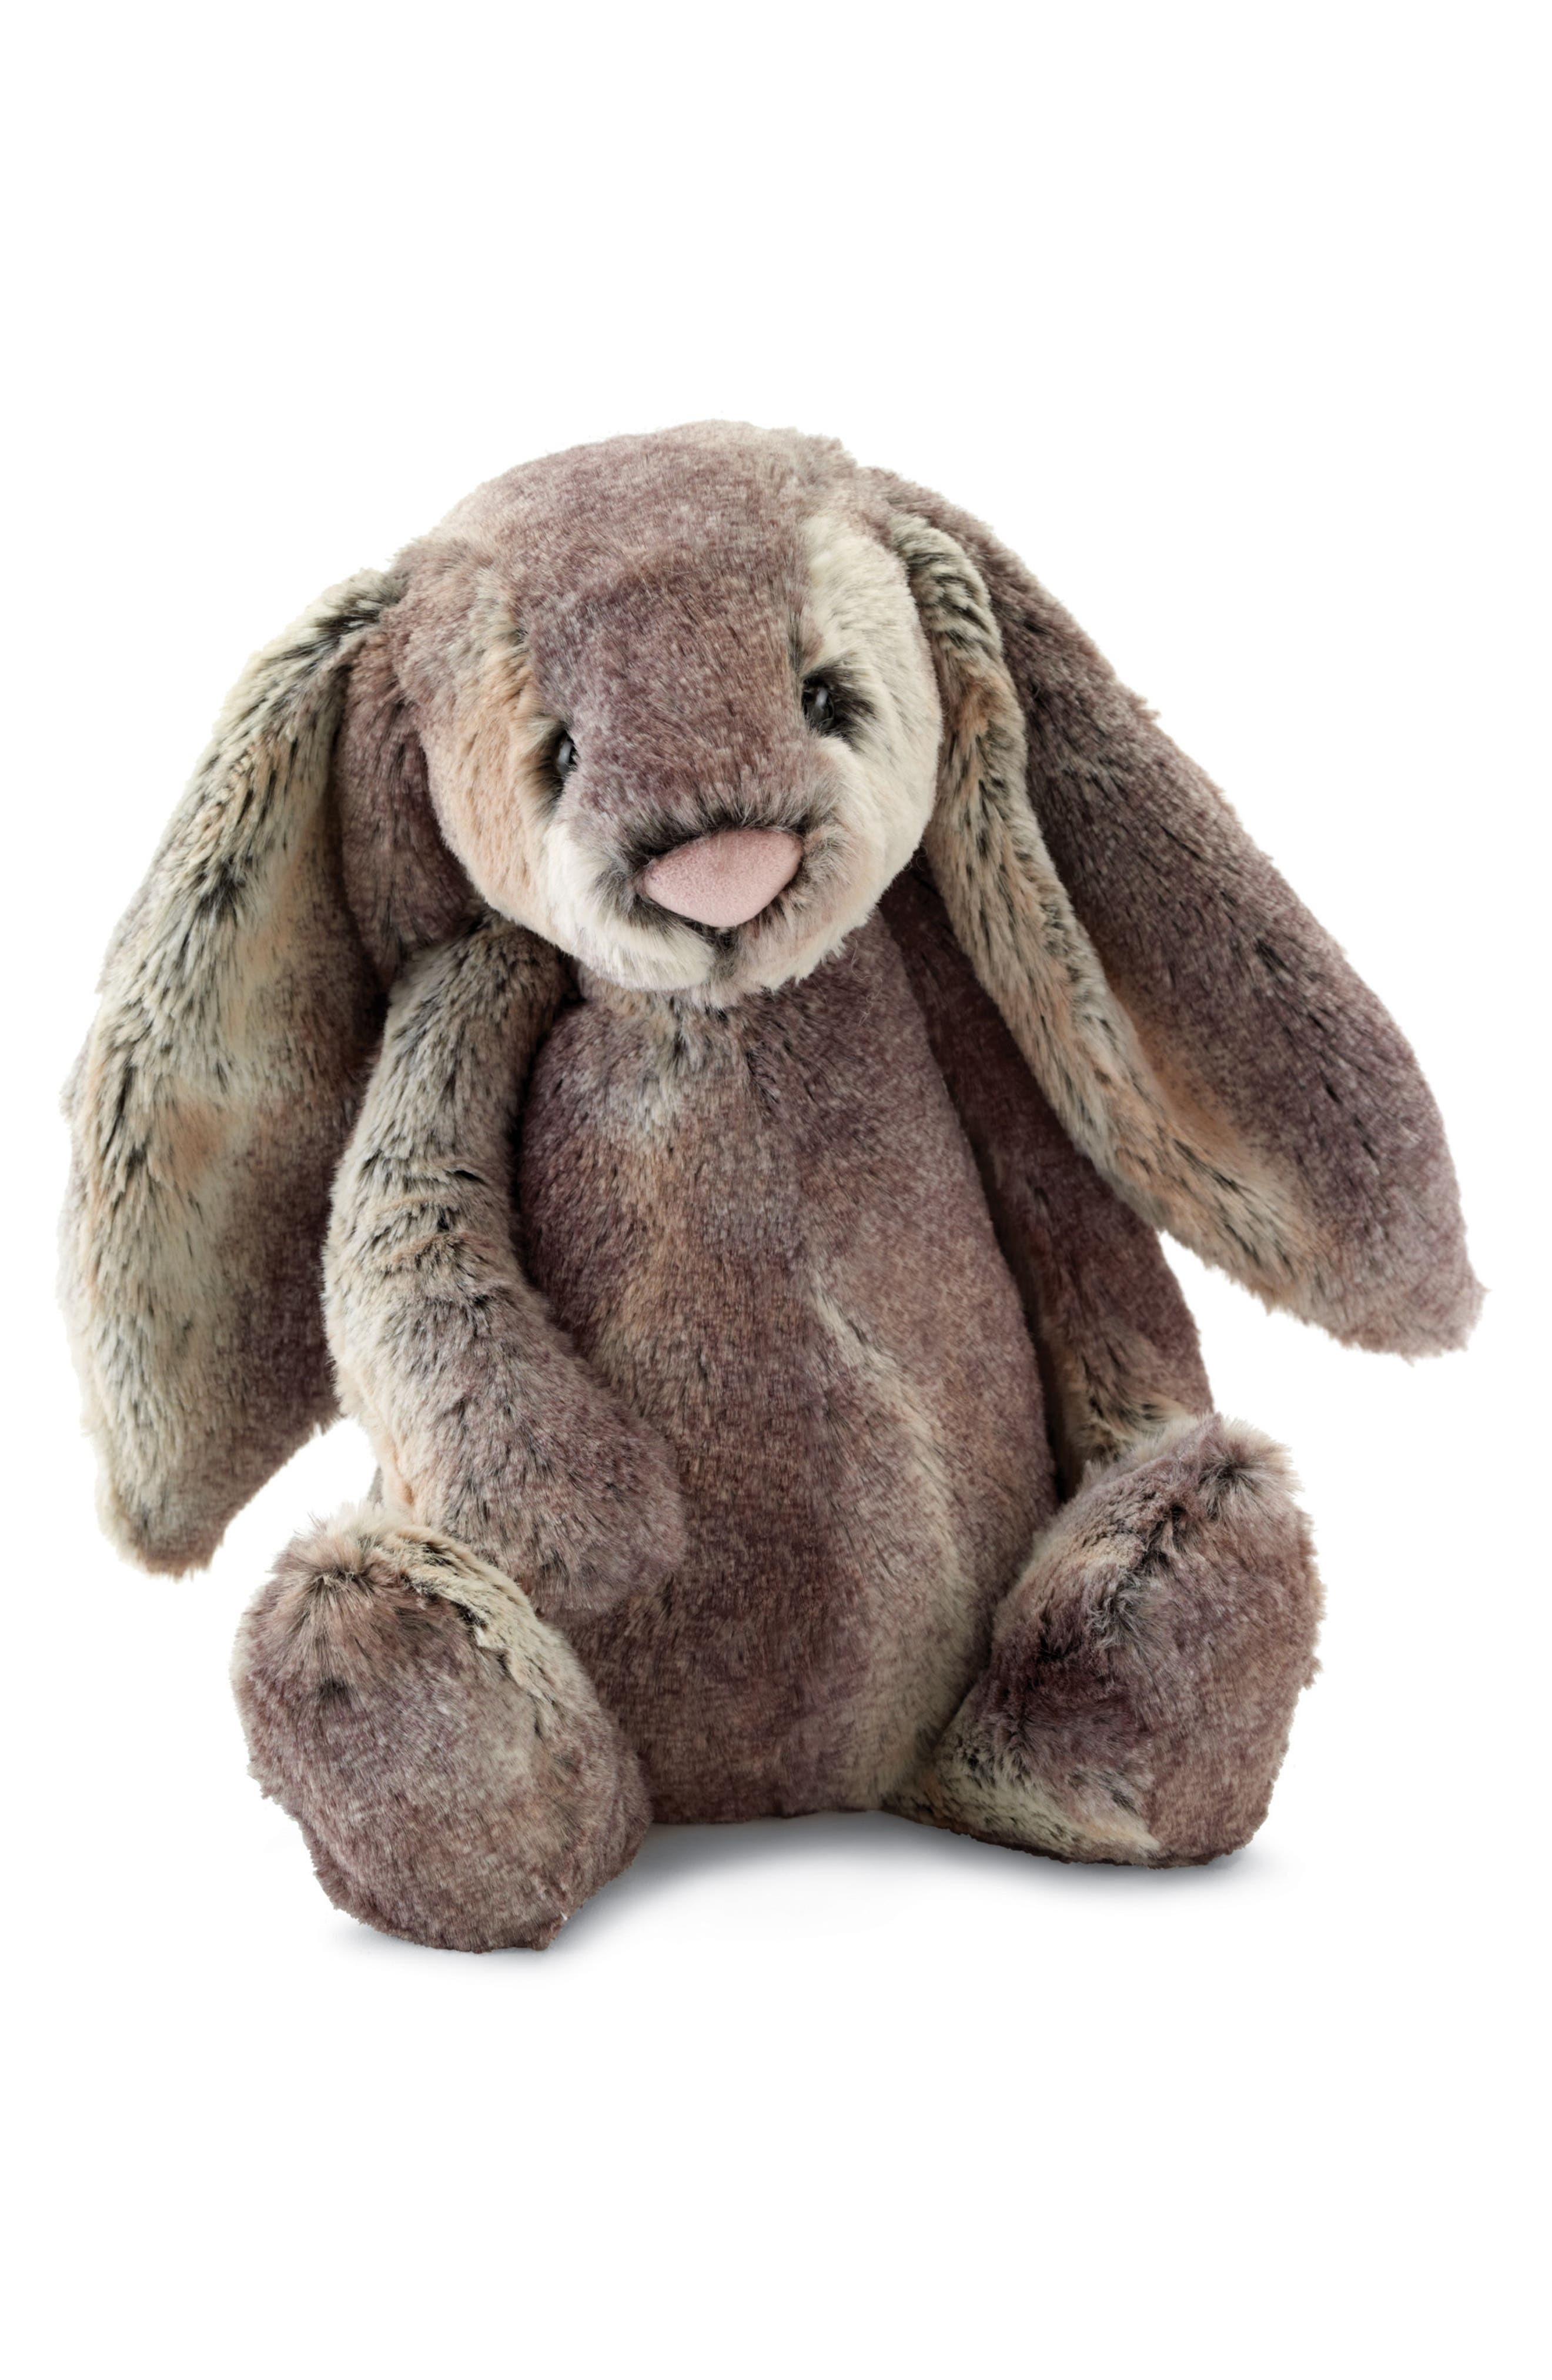 Main Image - Jellycat Woodland Babe Bunny Stuffed Animal